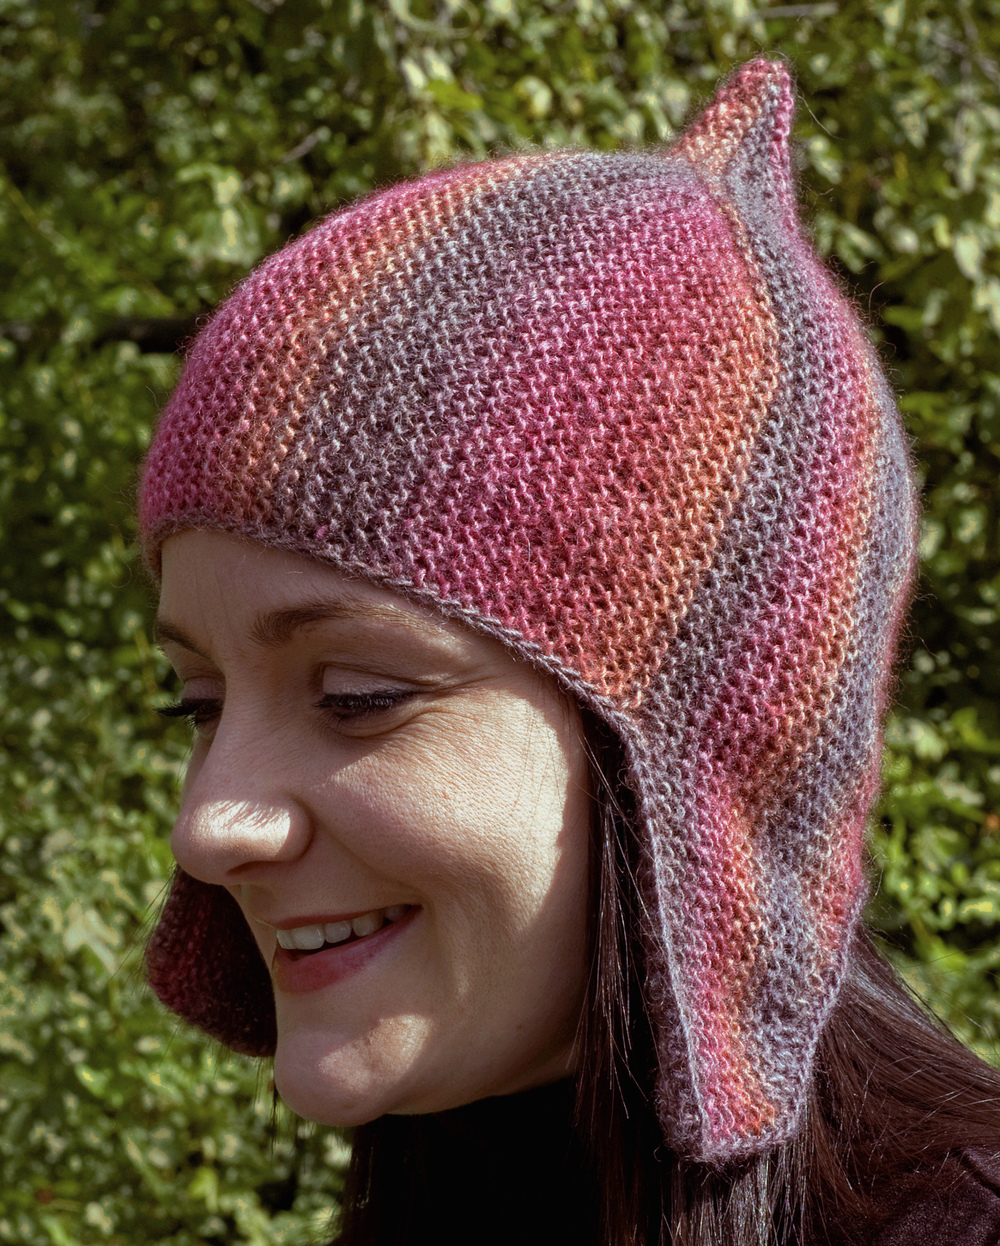 Centuria sideways knit chullo pixie helmet Hat pattern